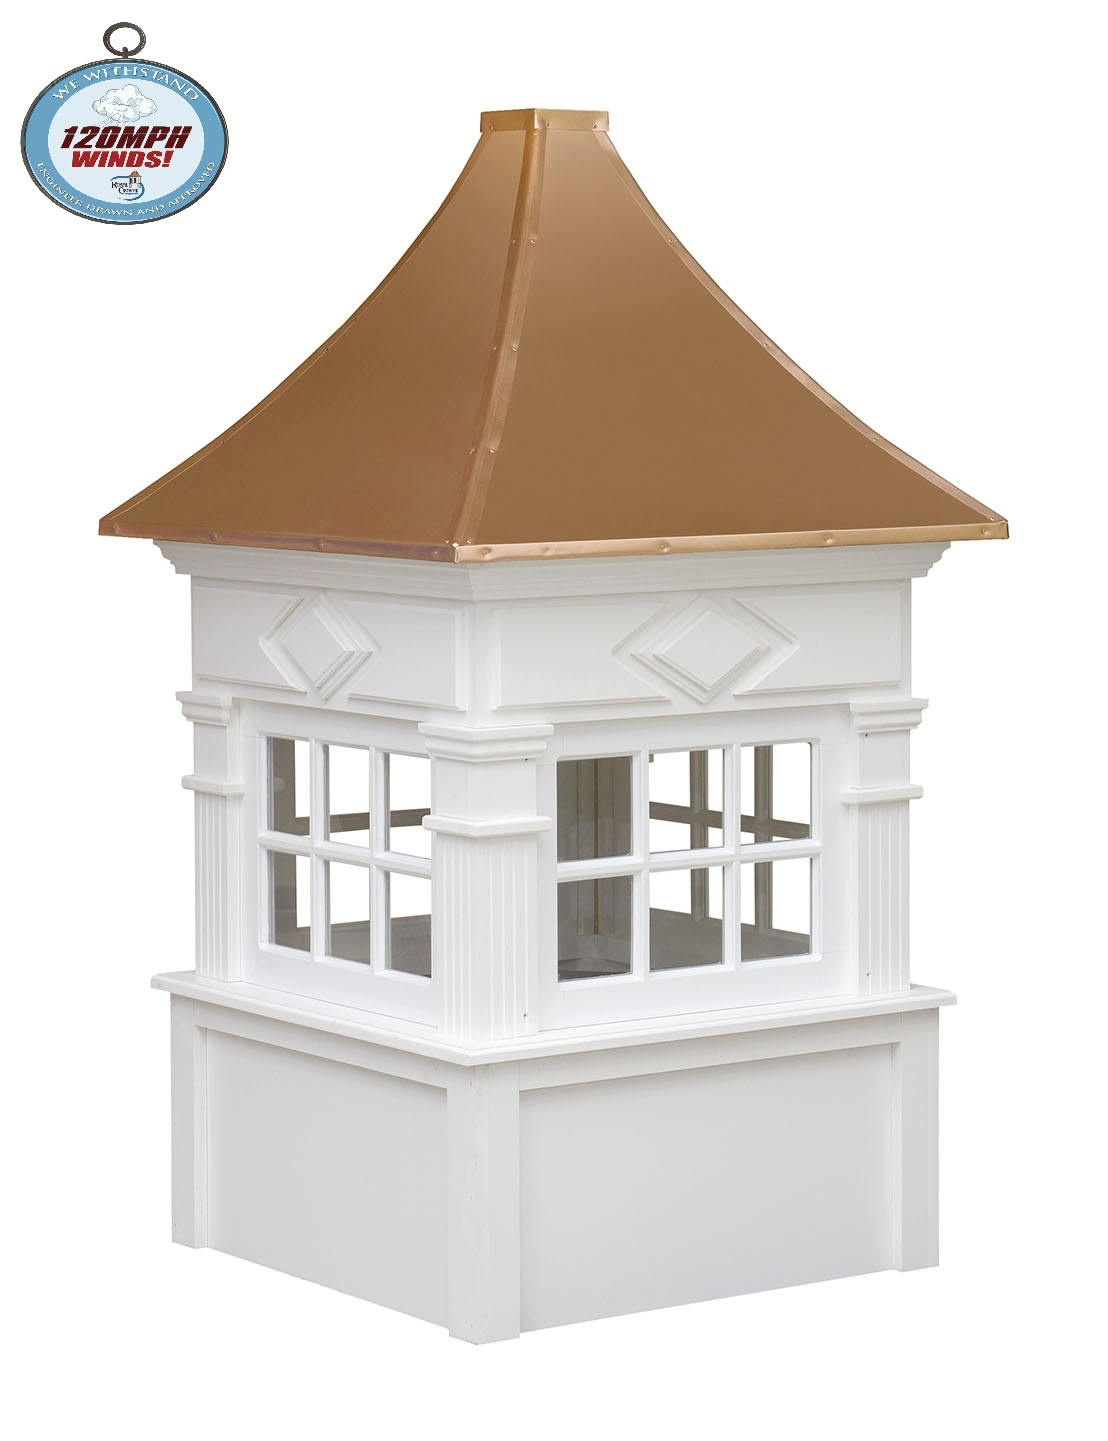 quincy cupola with we withstand 120mph winds logo